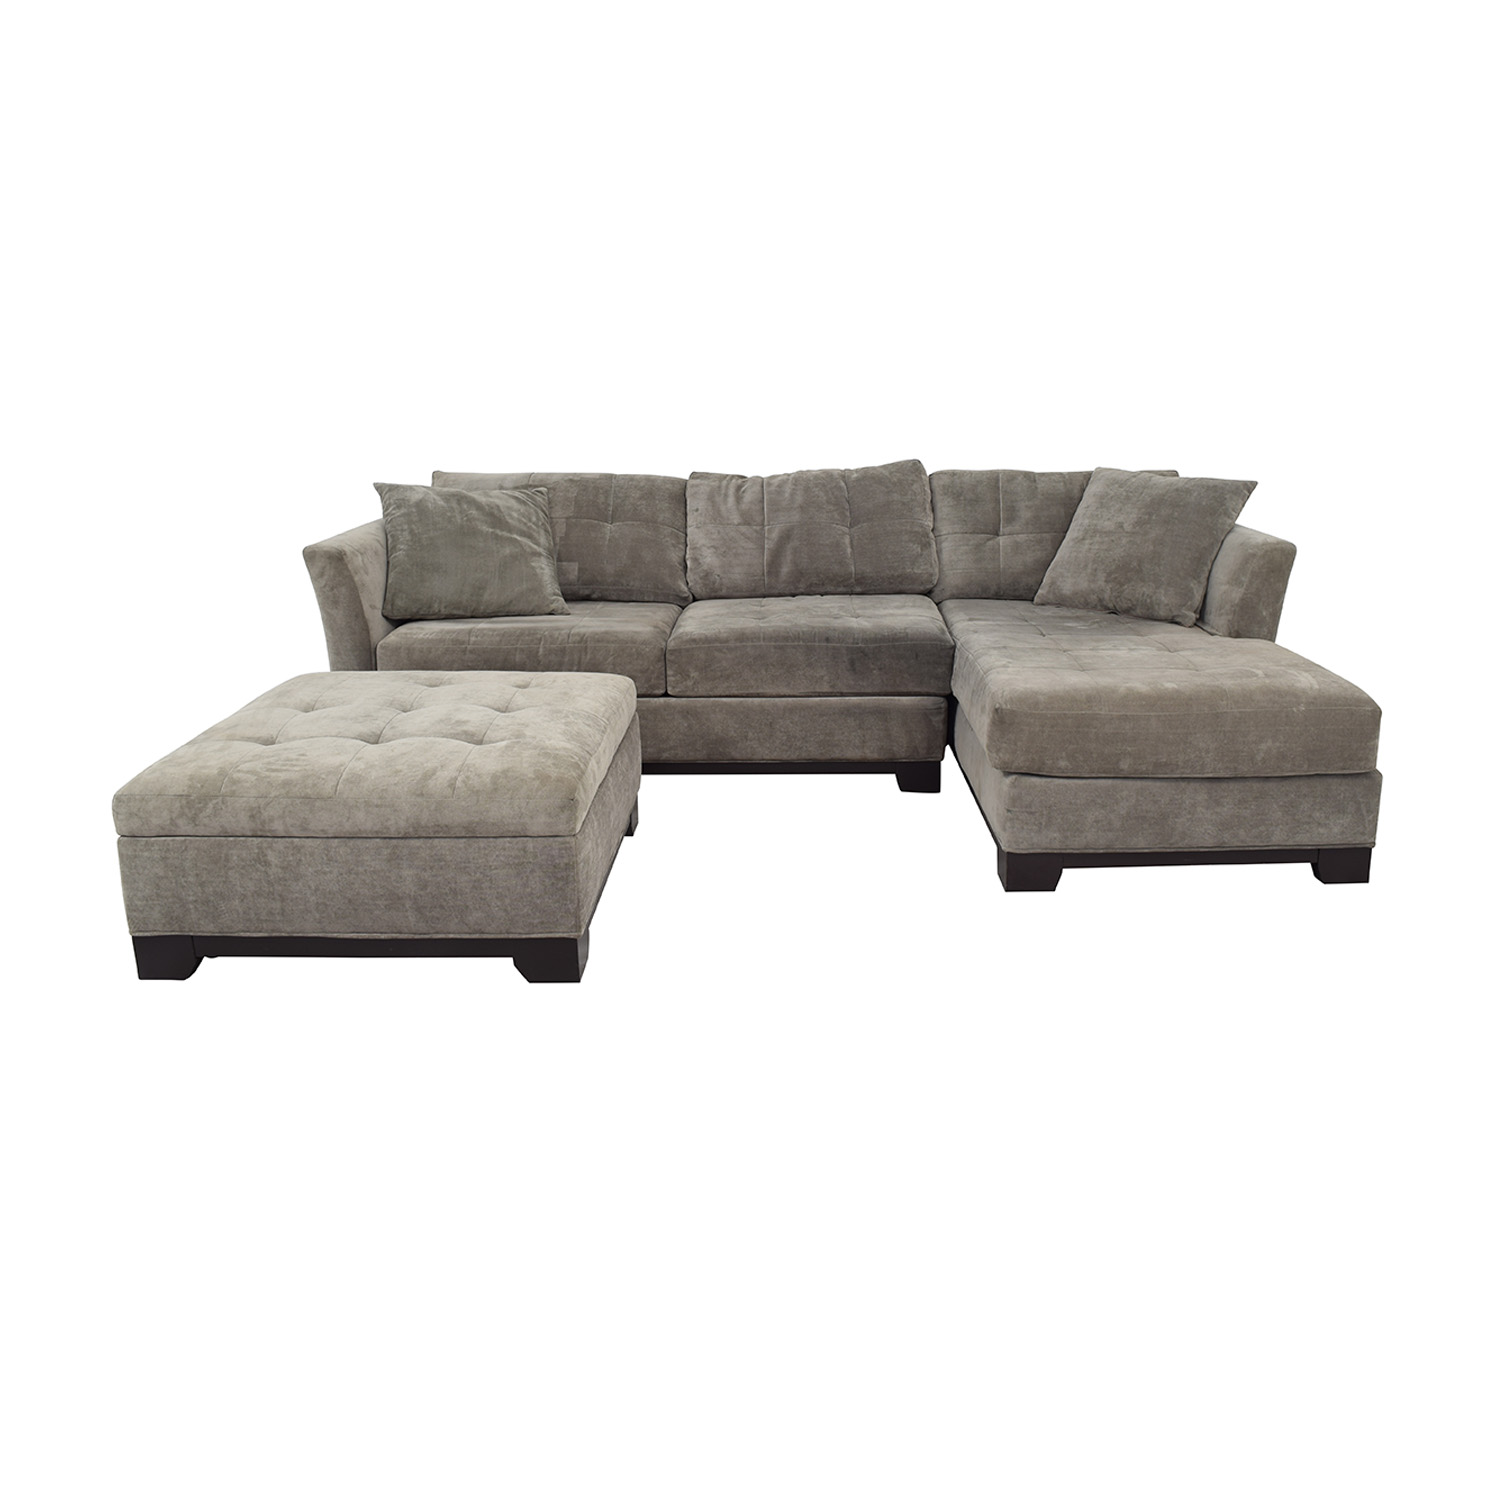 58 Off Macy S Macy S Furniture Chaise Couch With Ottoman Sofas